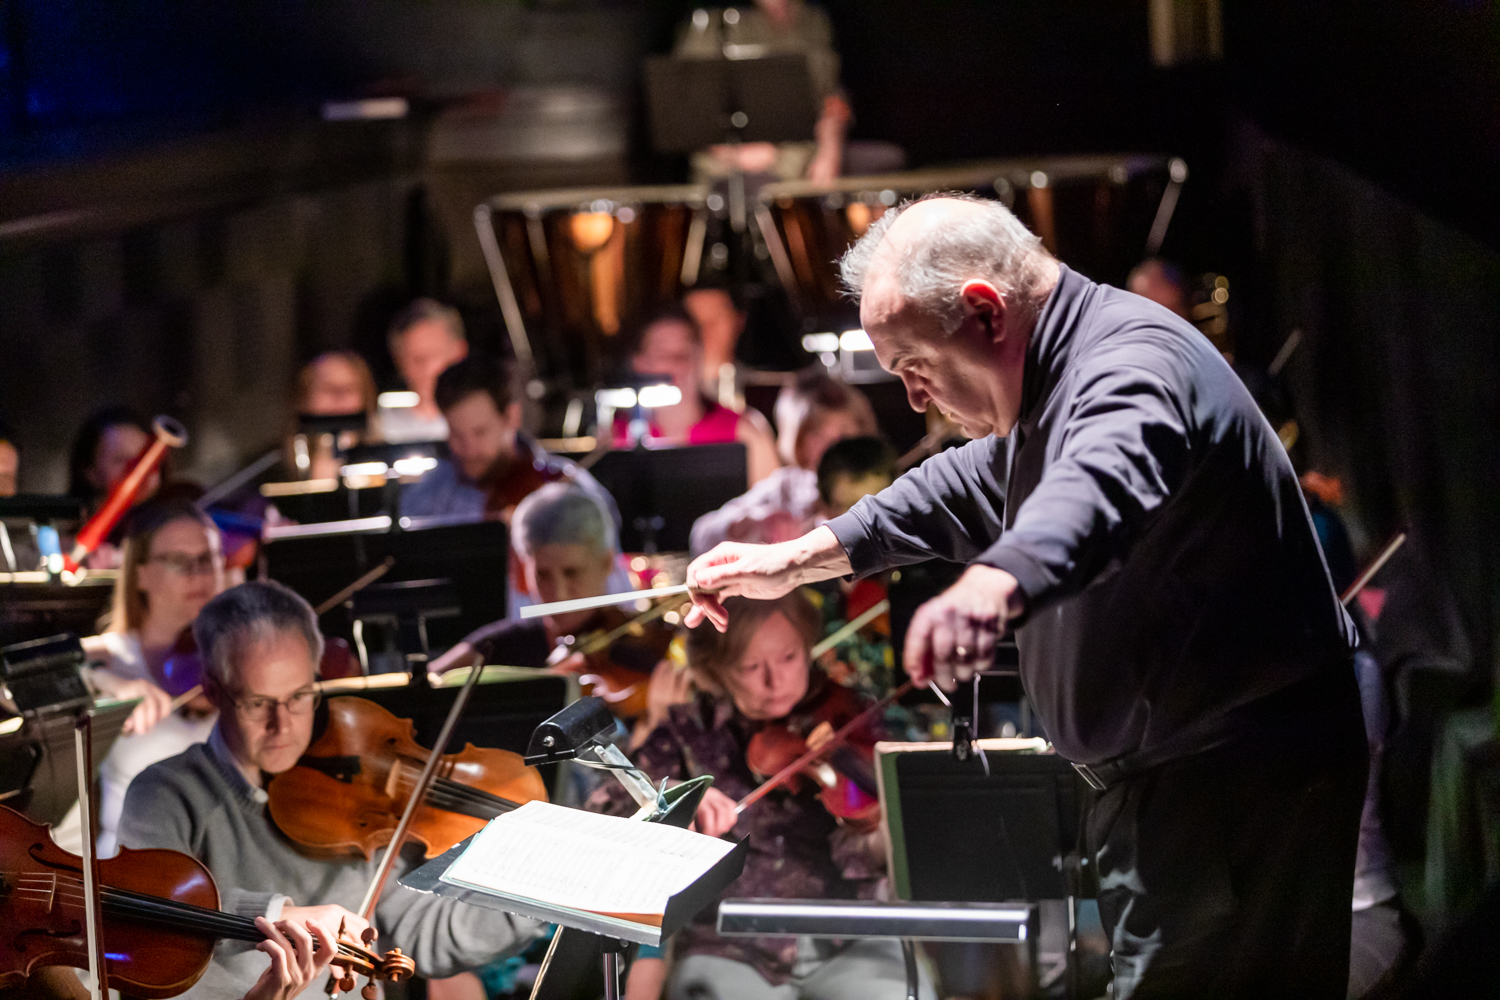 IN REVIEW: Maestro JOSEPH RESCIGNO and the North Carolina Opera Orchestra rehearsing for North Carolina Opera's April 2019 production of Giacomo Puccini's TOSCA [Photograph by Eric Waters, © by North Carolina Opera]